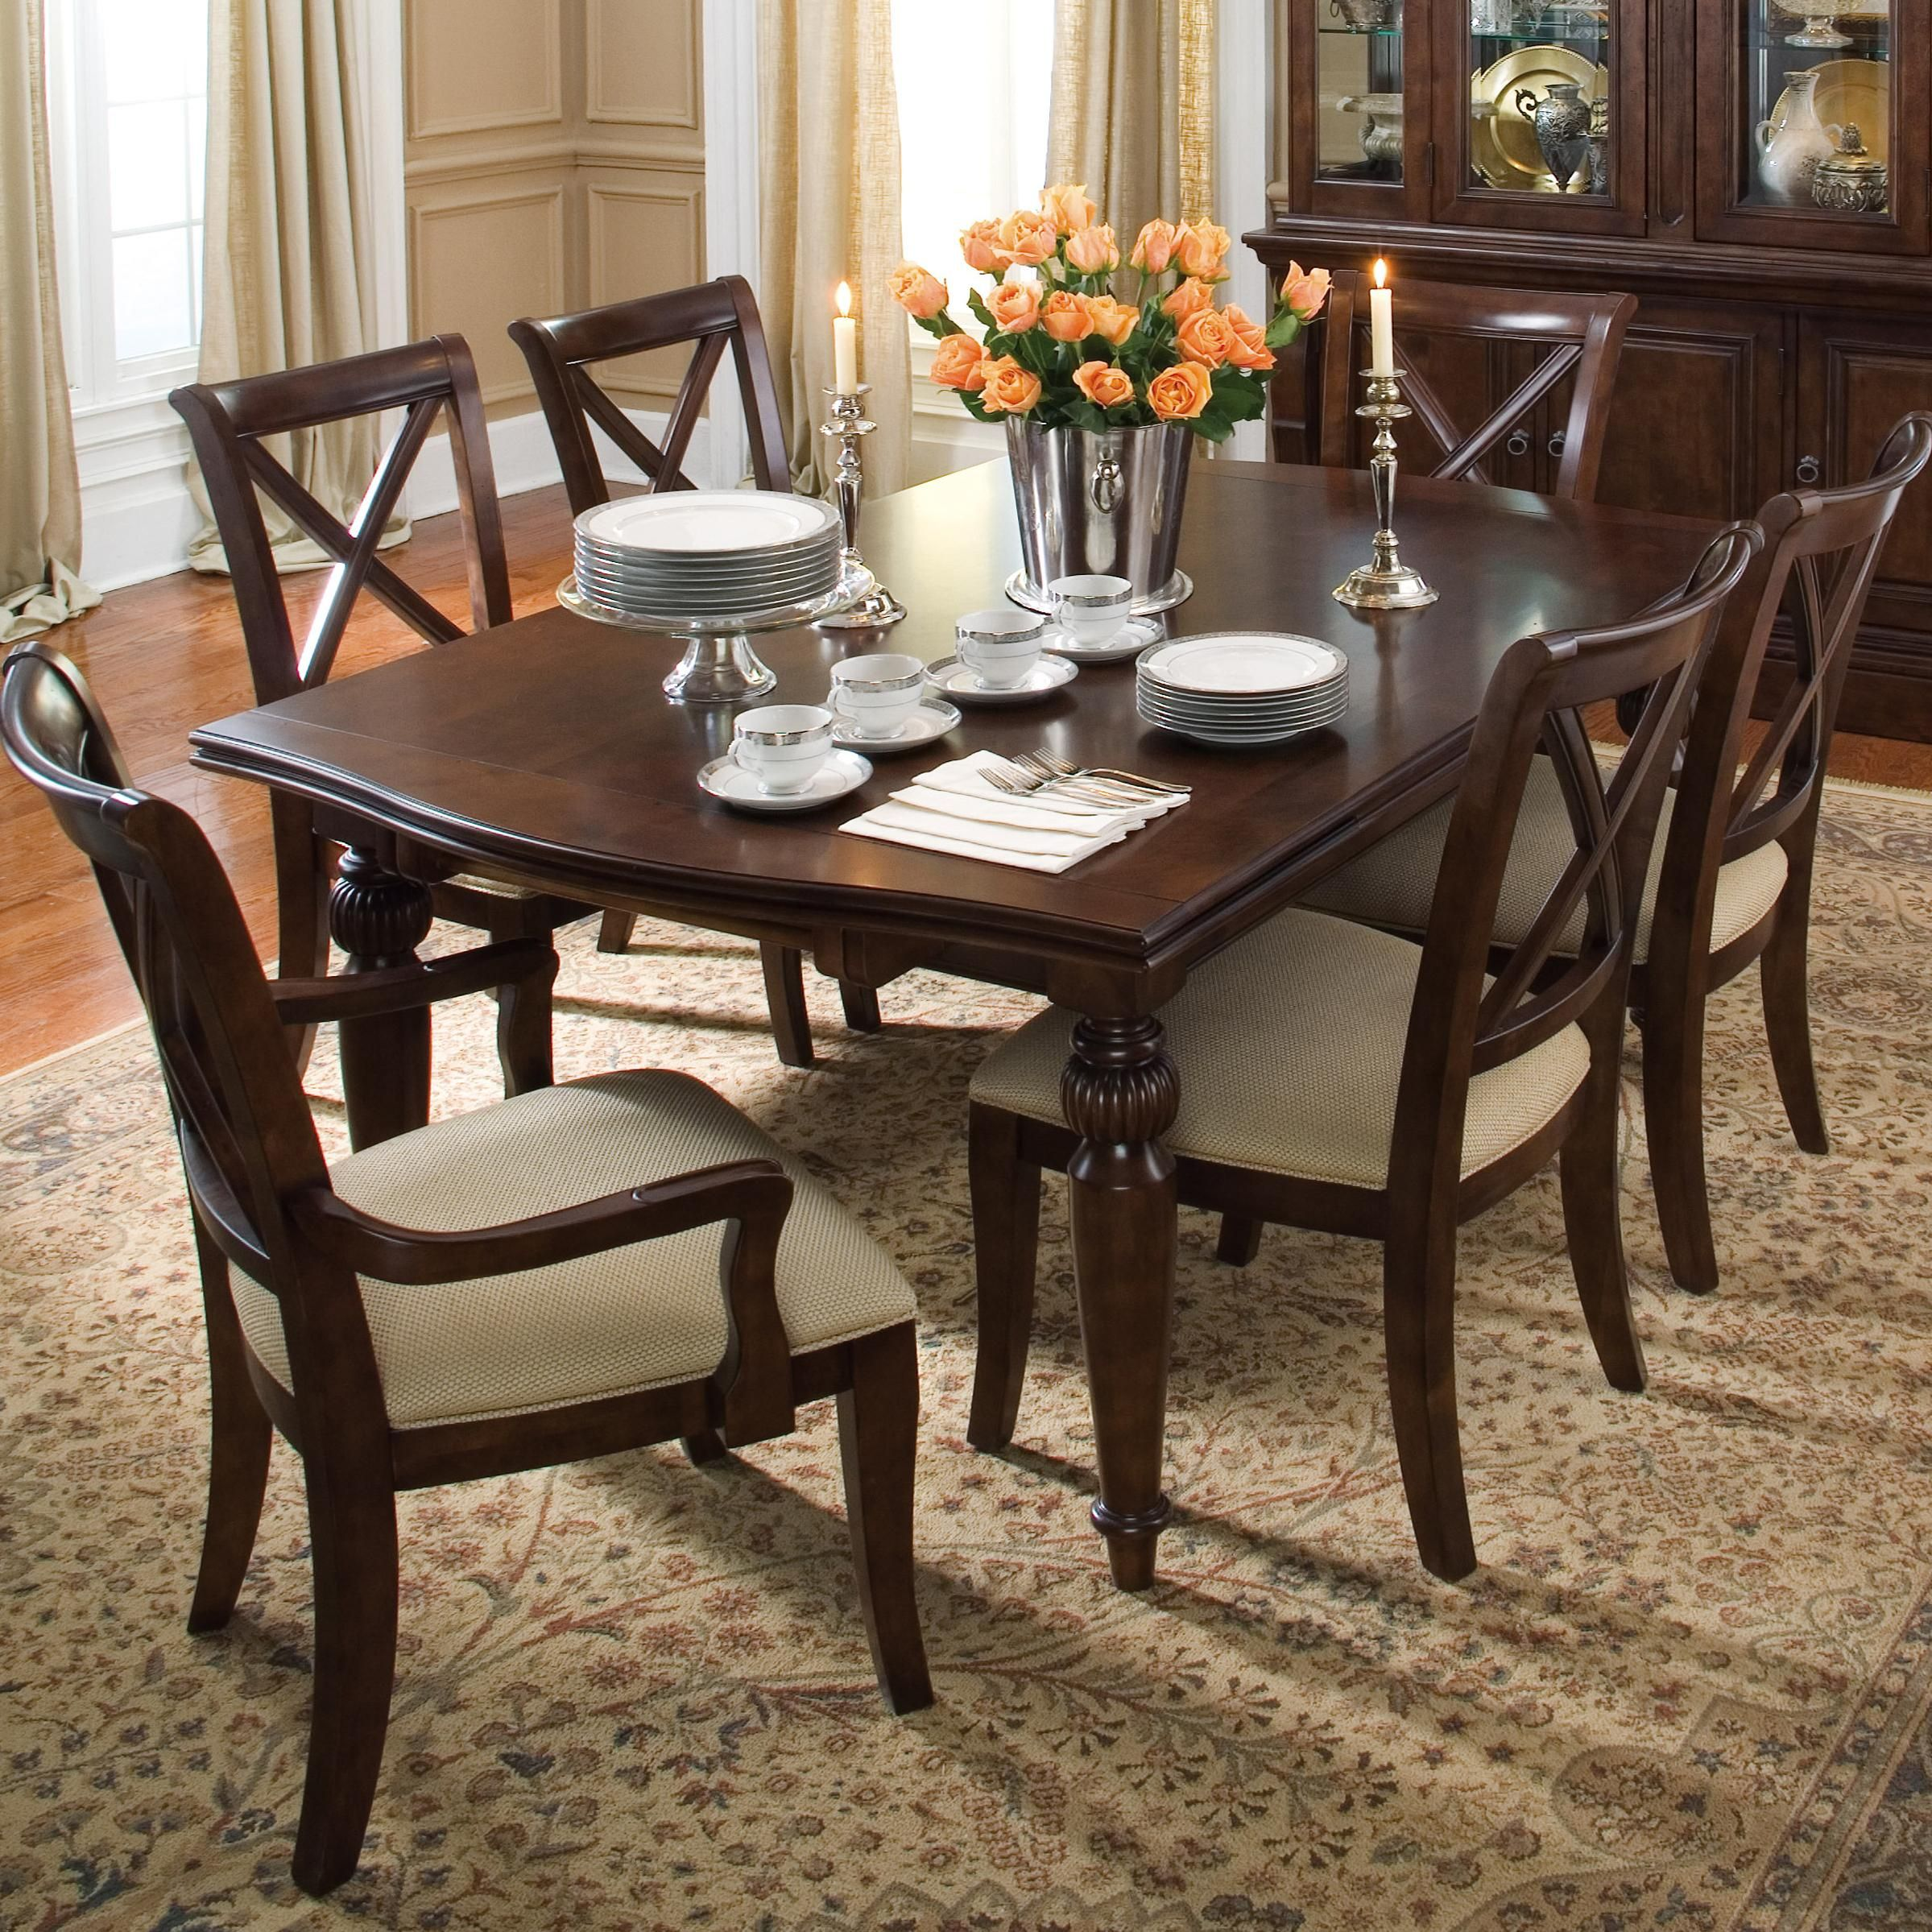 Keswick Refectory Table And Chair Set By Kincaid Furniture Home Decor Rectangular Dining Set Furniture